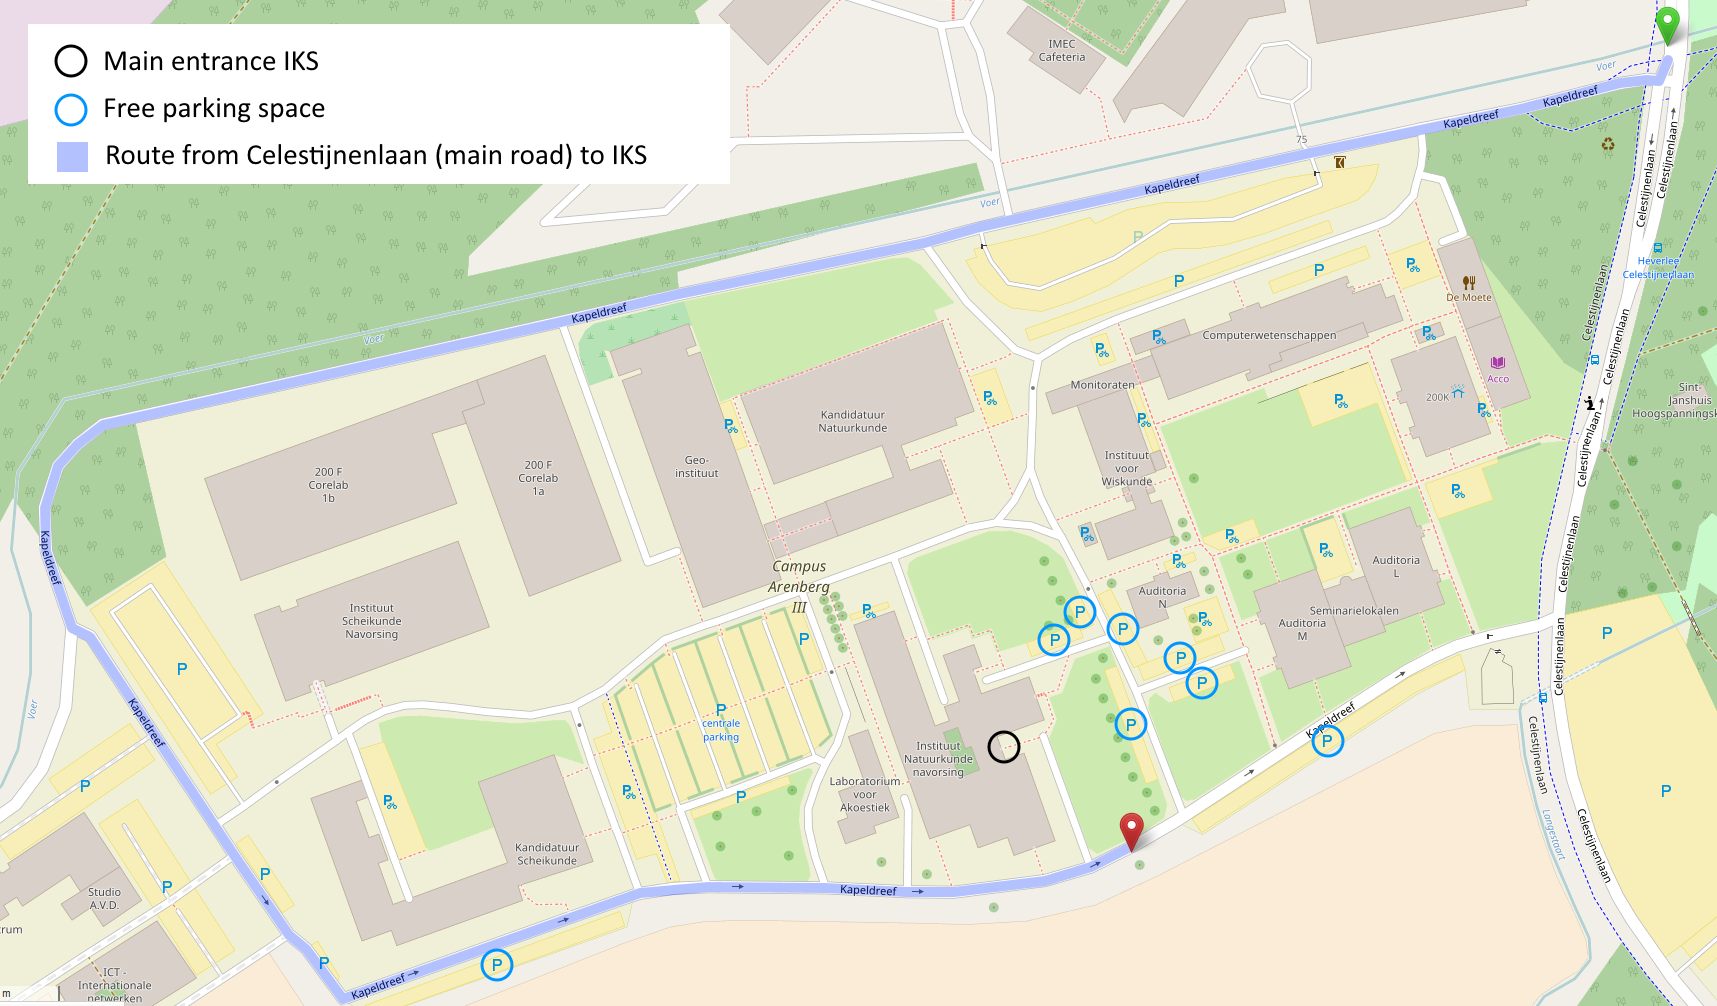 ku leuven campus map Contact Institute For Nuclear And Radiation Physics ku leuven campus map